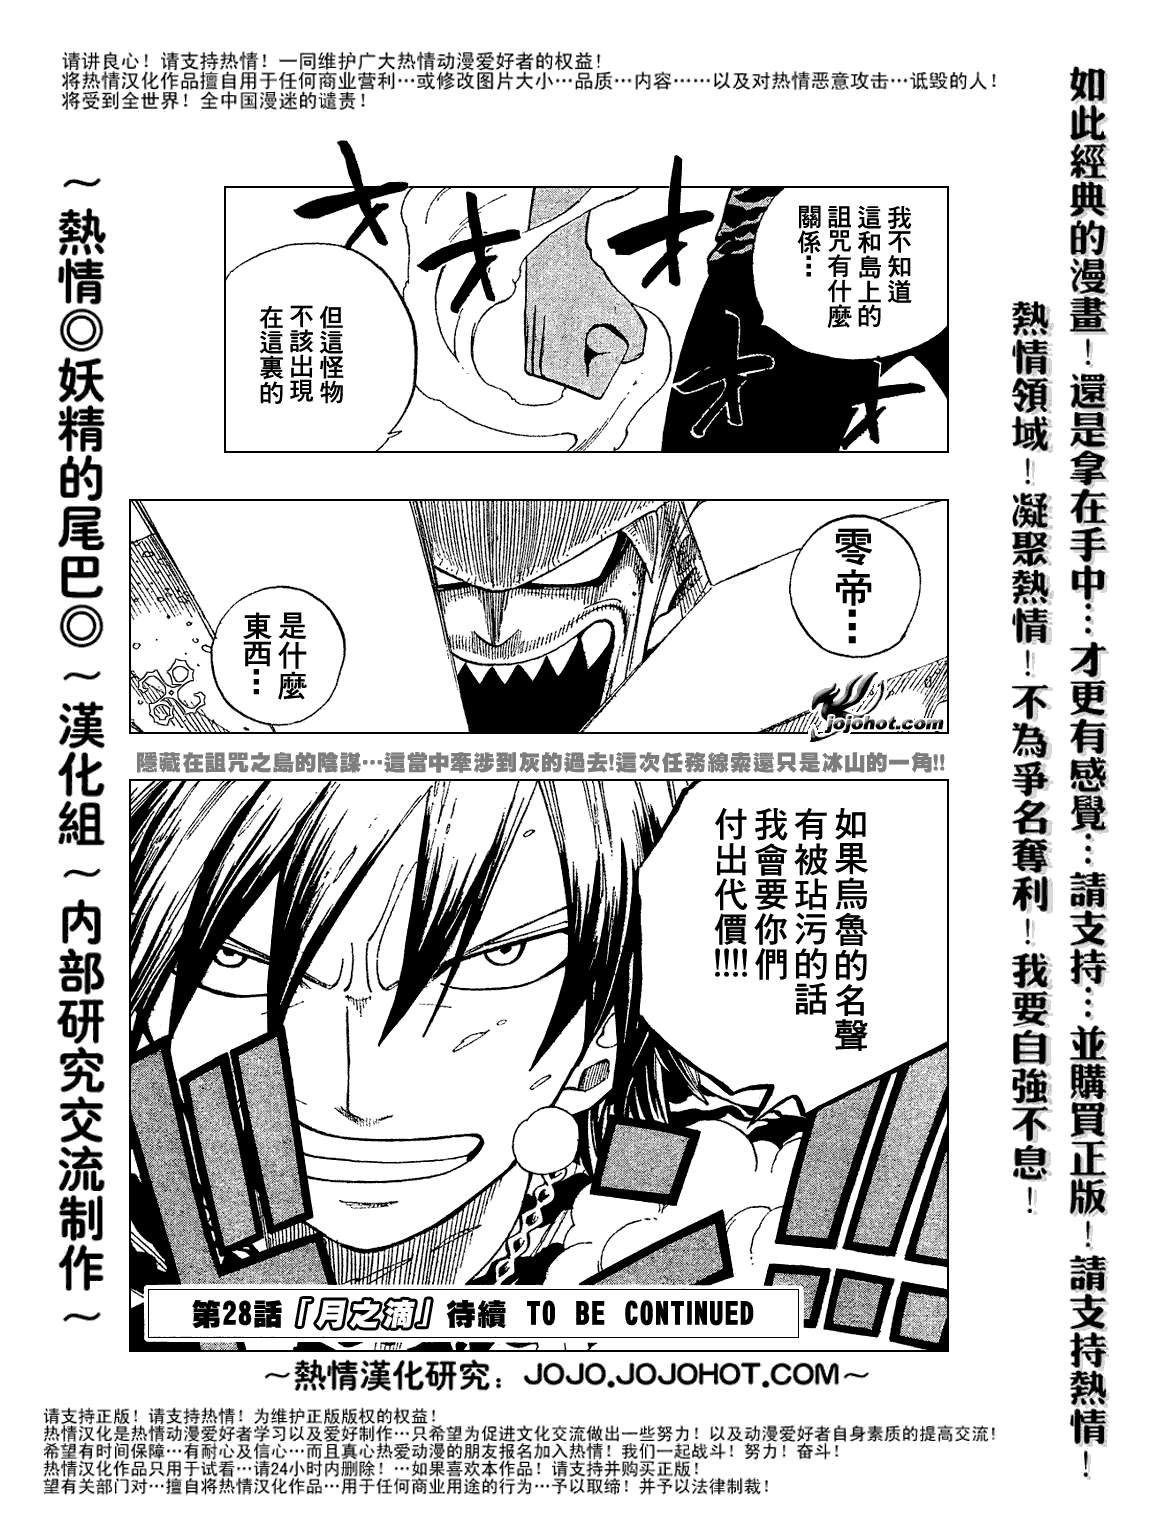 fairytail_27_29